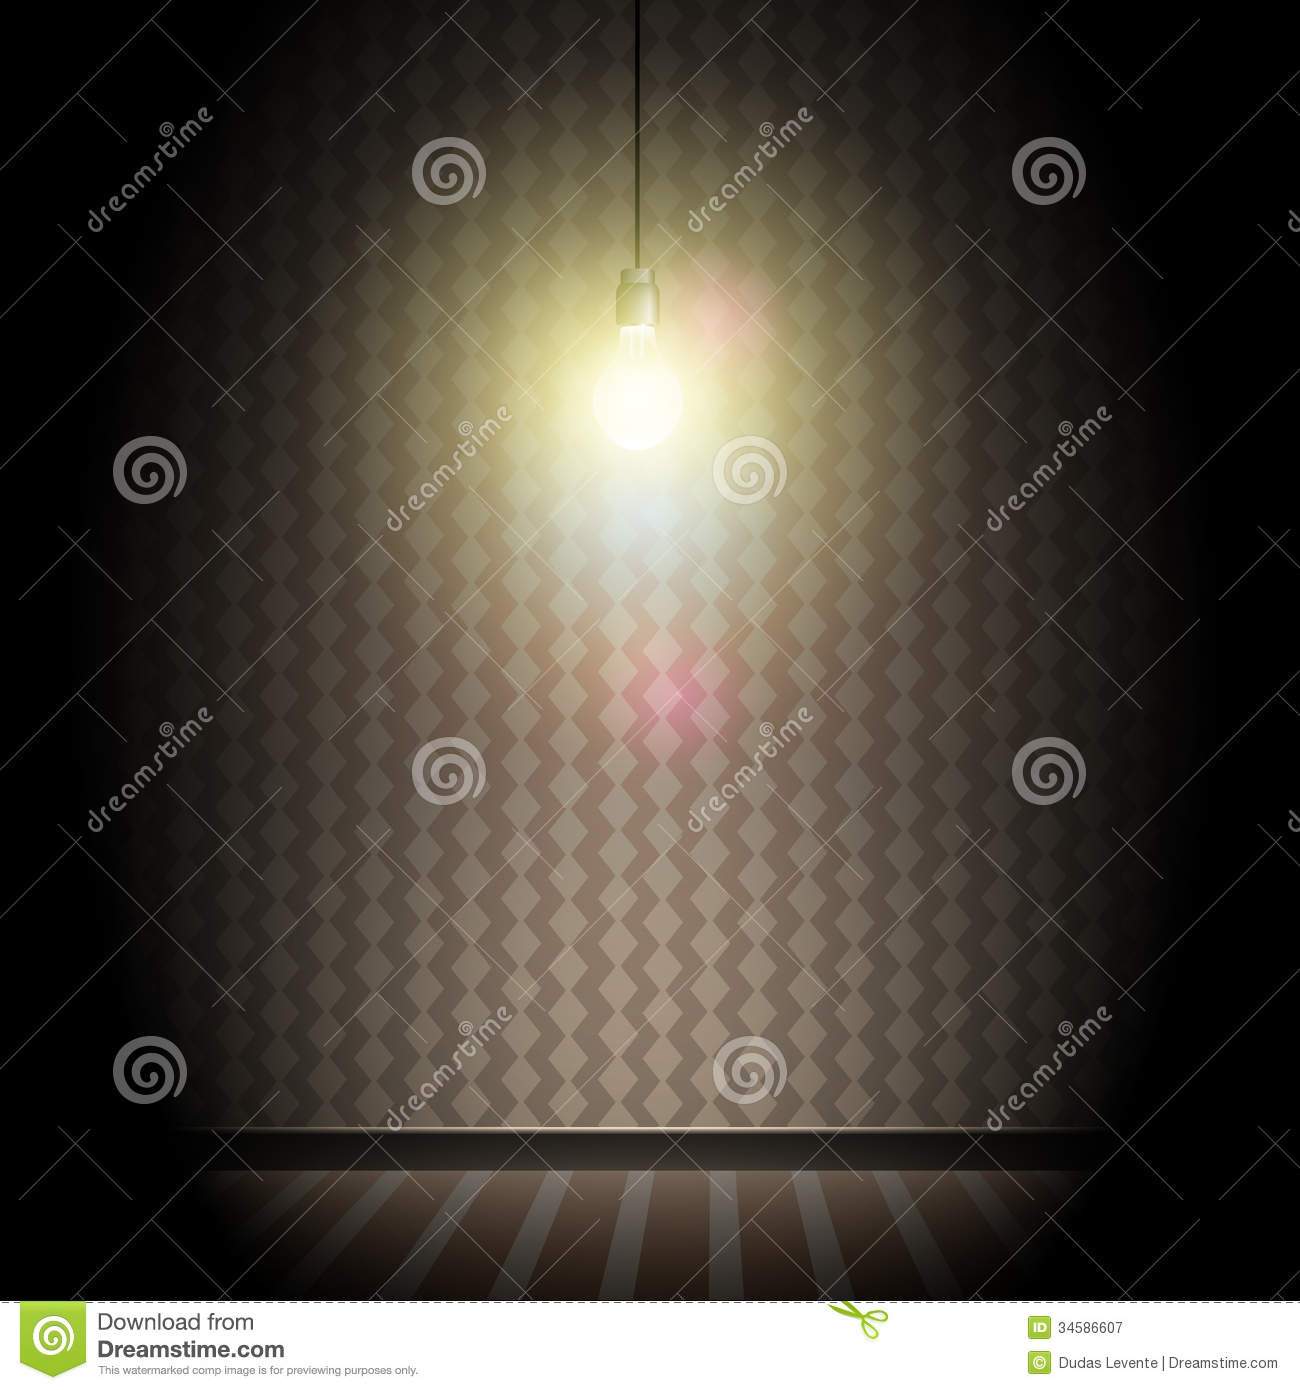 Dark room with light bulb - Vintage Dark Room With Bright Glowing Light Bulb